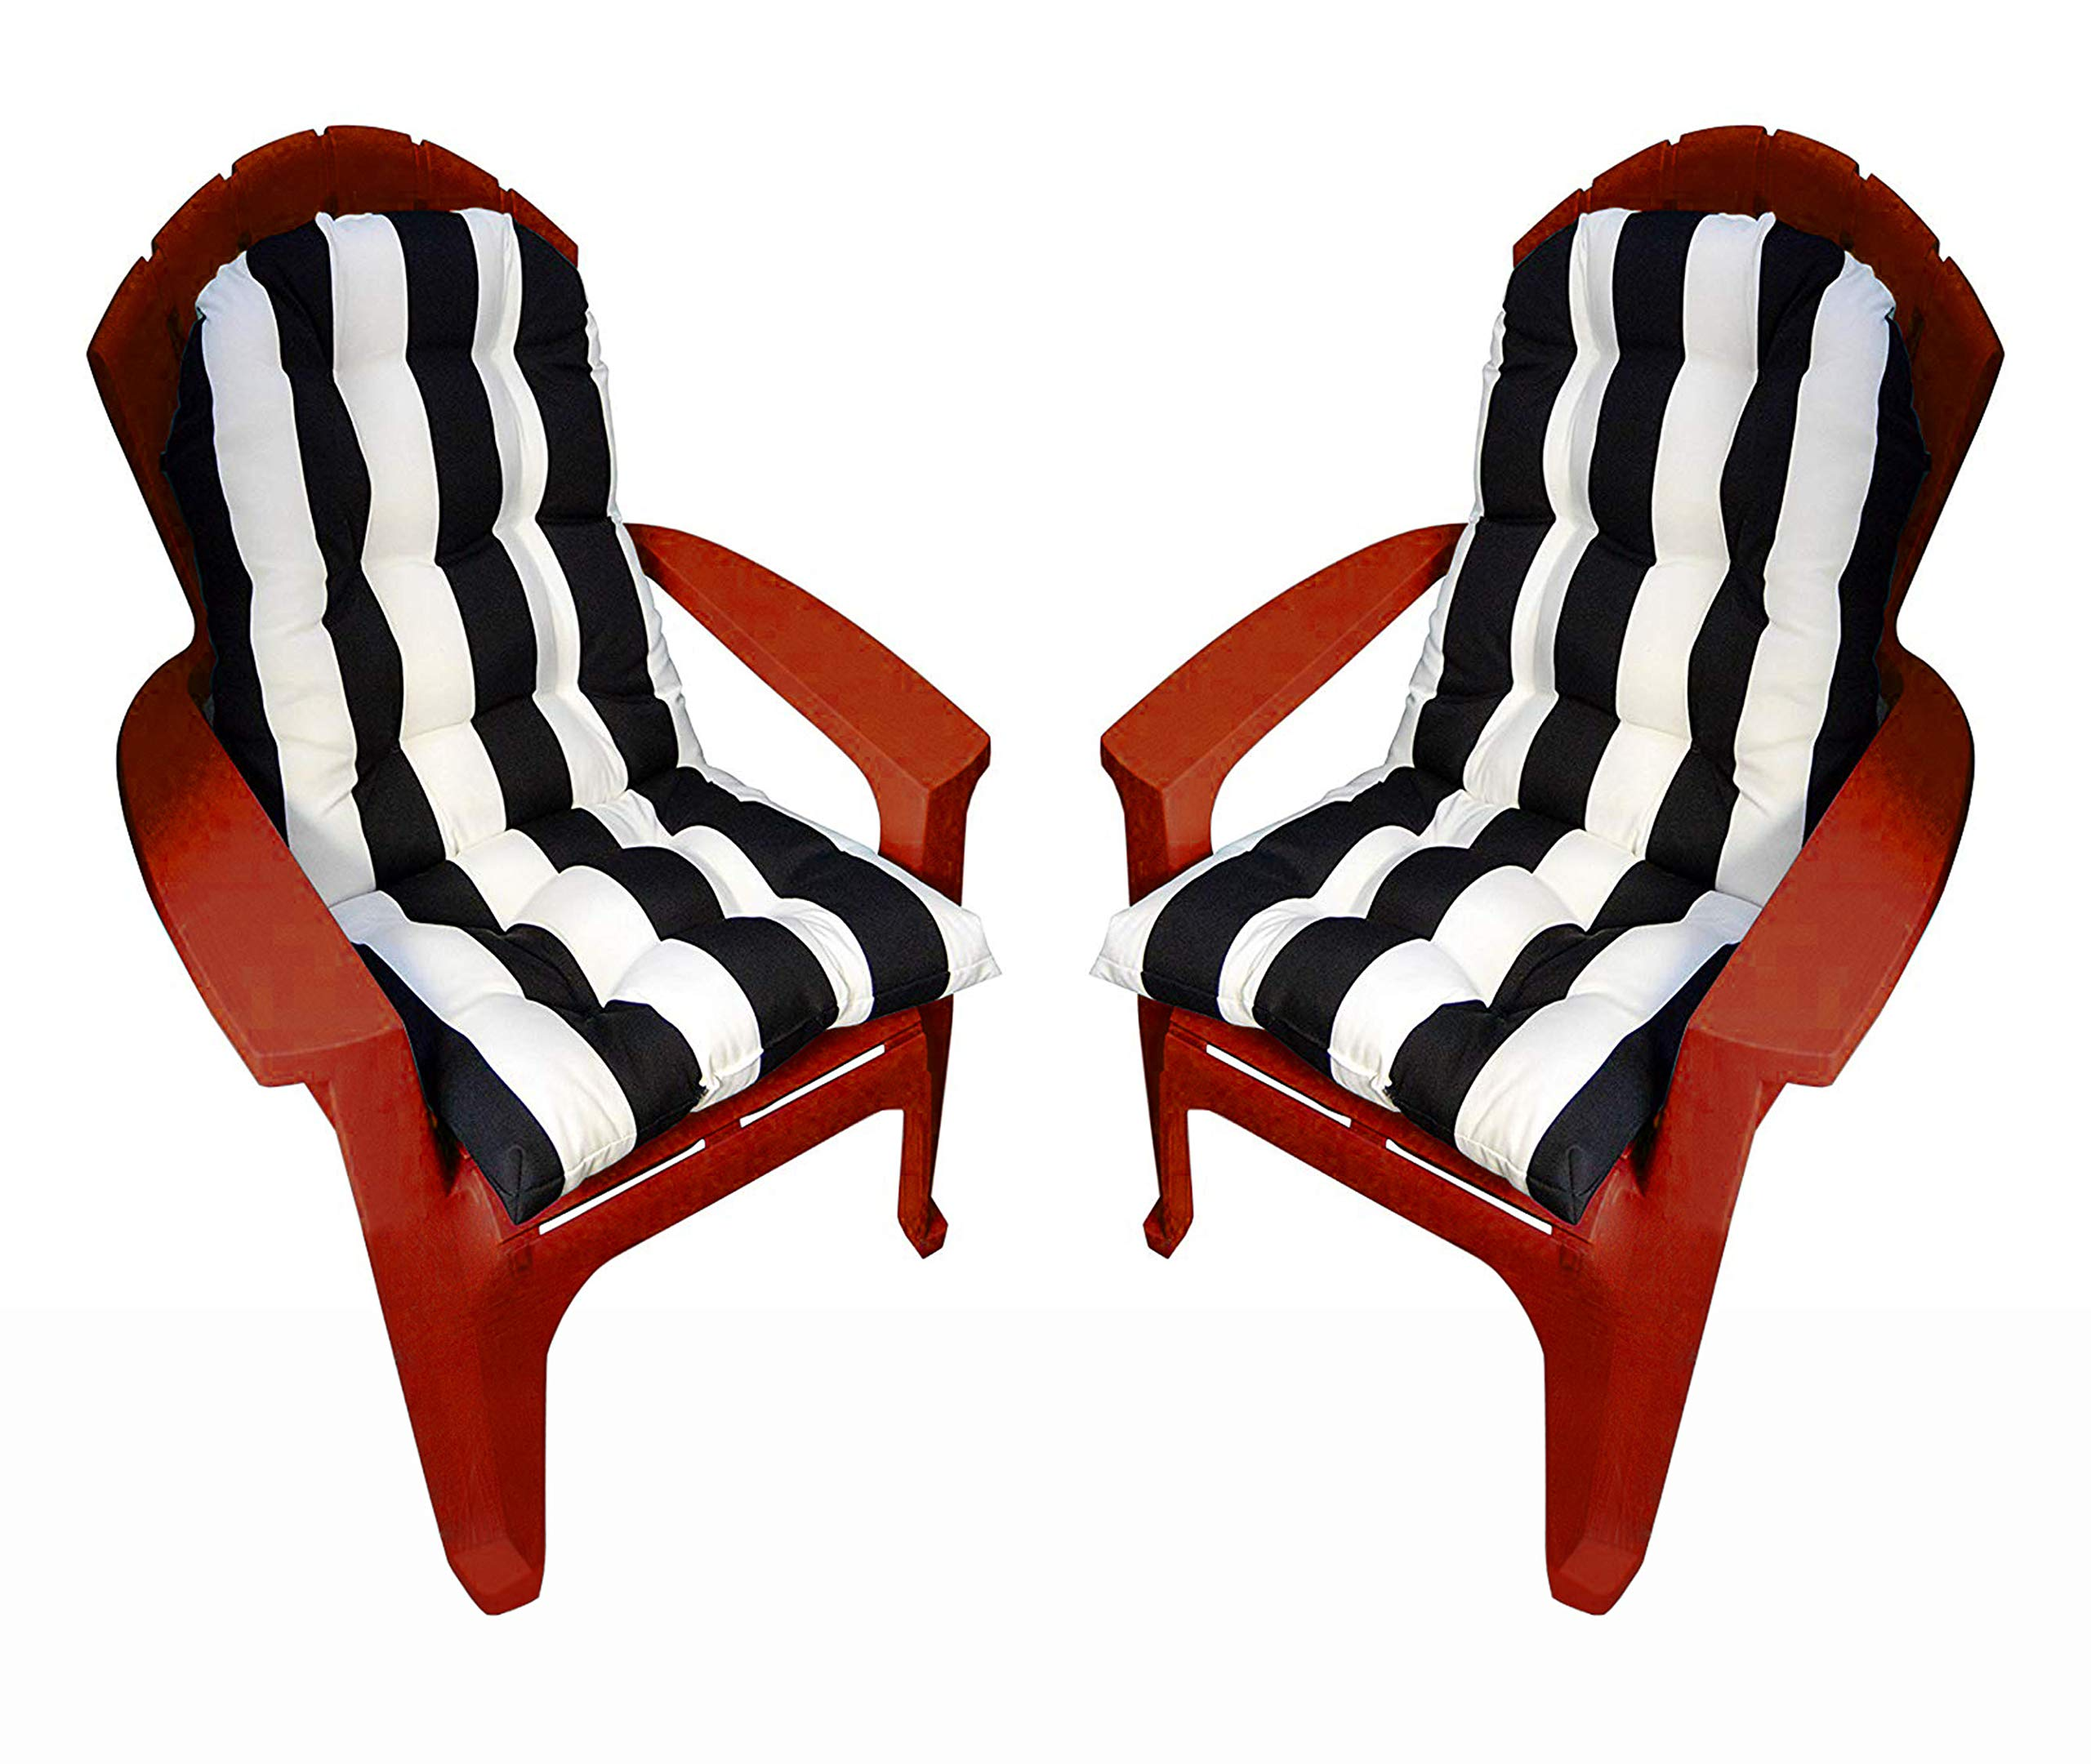 Set of 2 Outdoor Tufted Adirondack Chair Cushion - Black & White Stripe